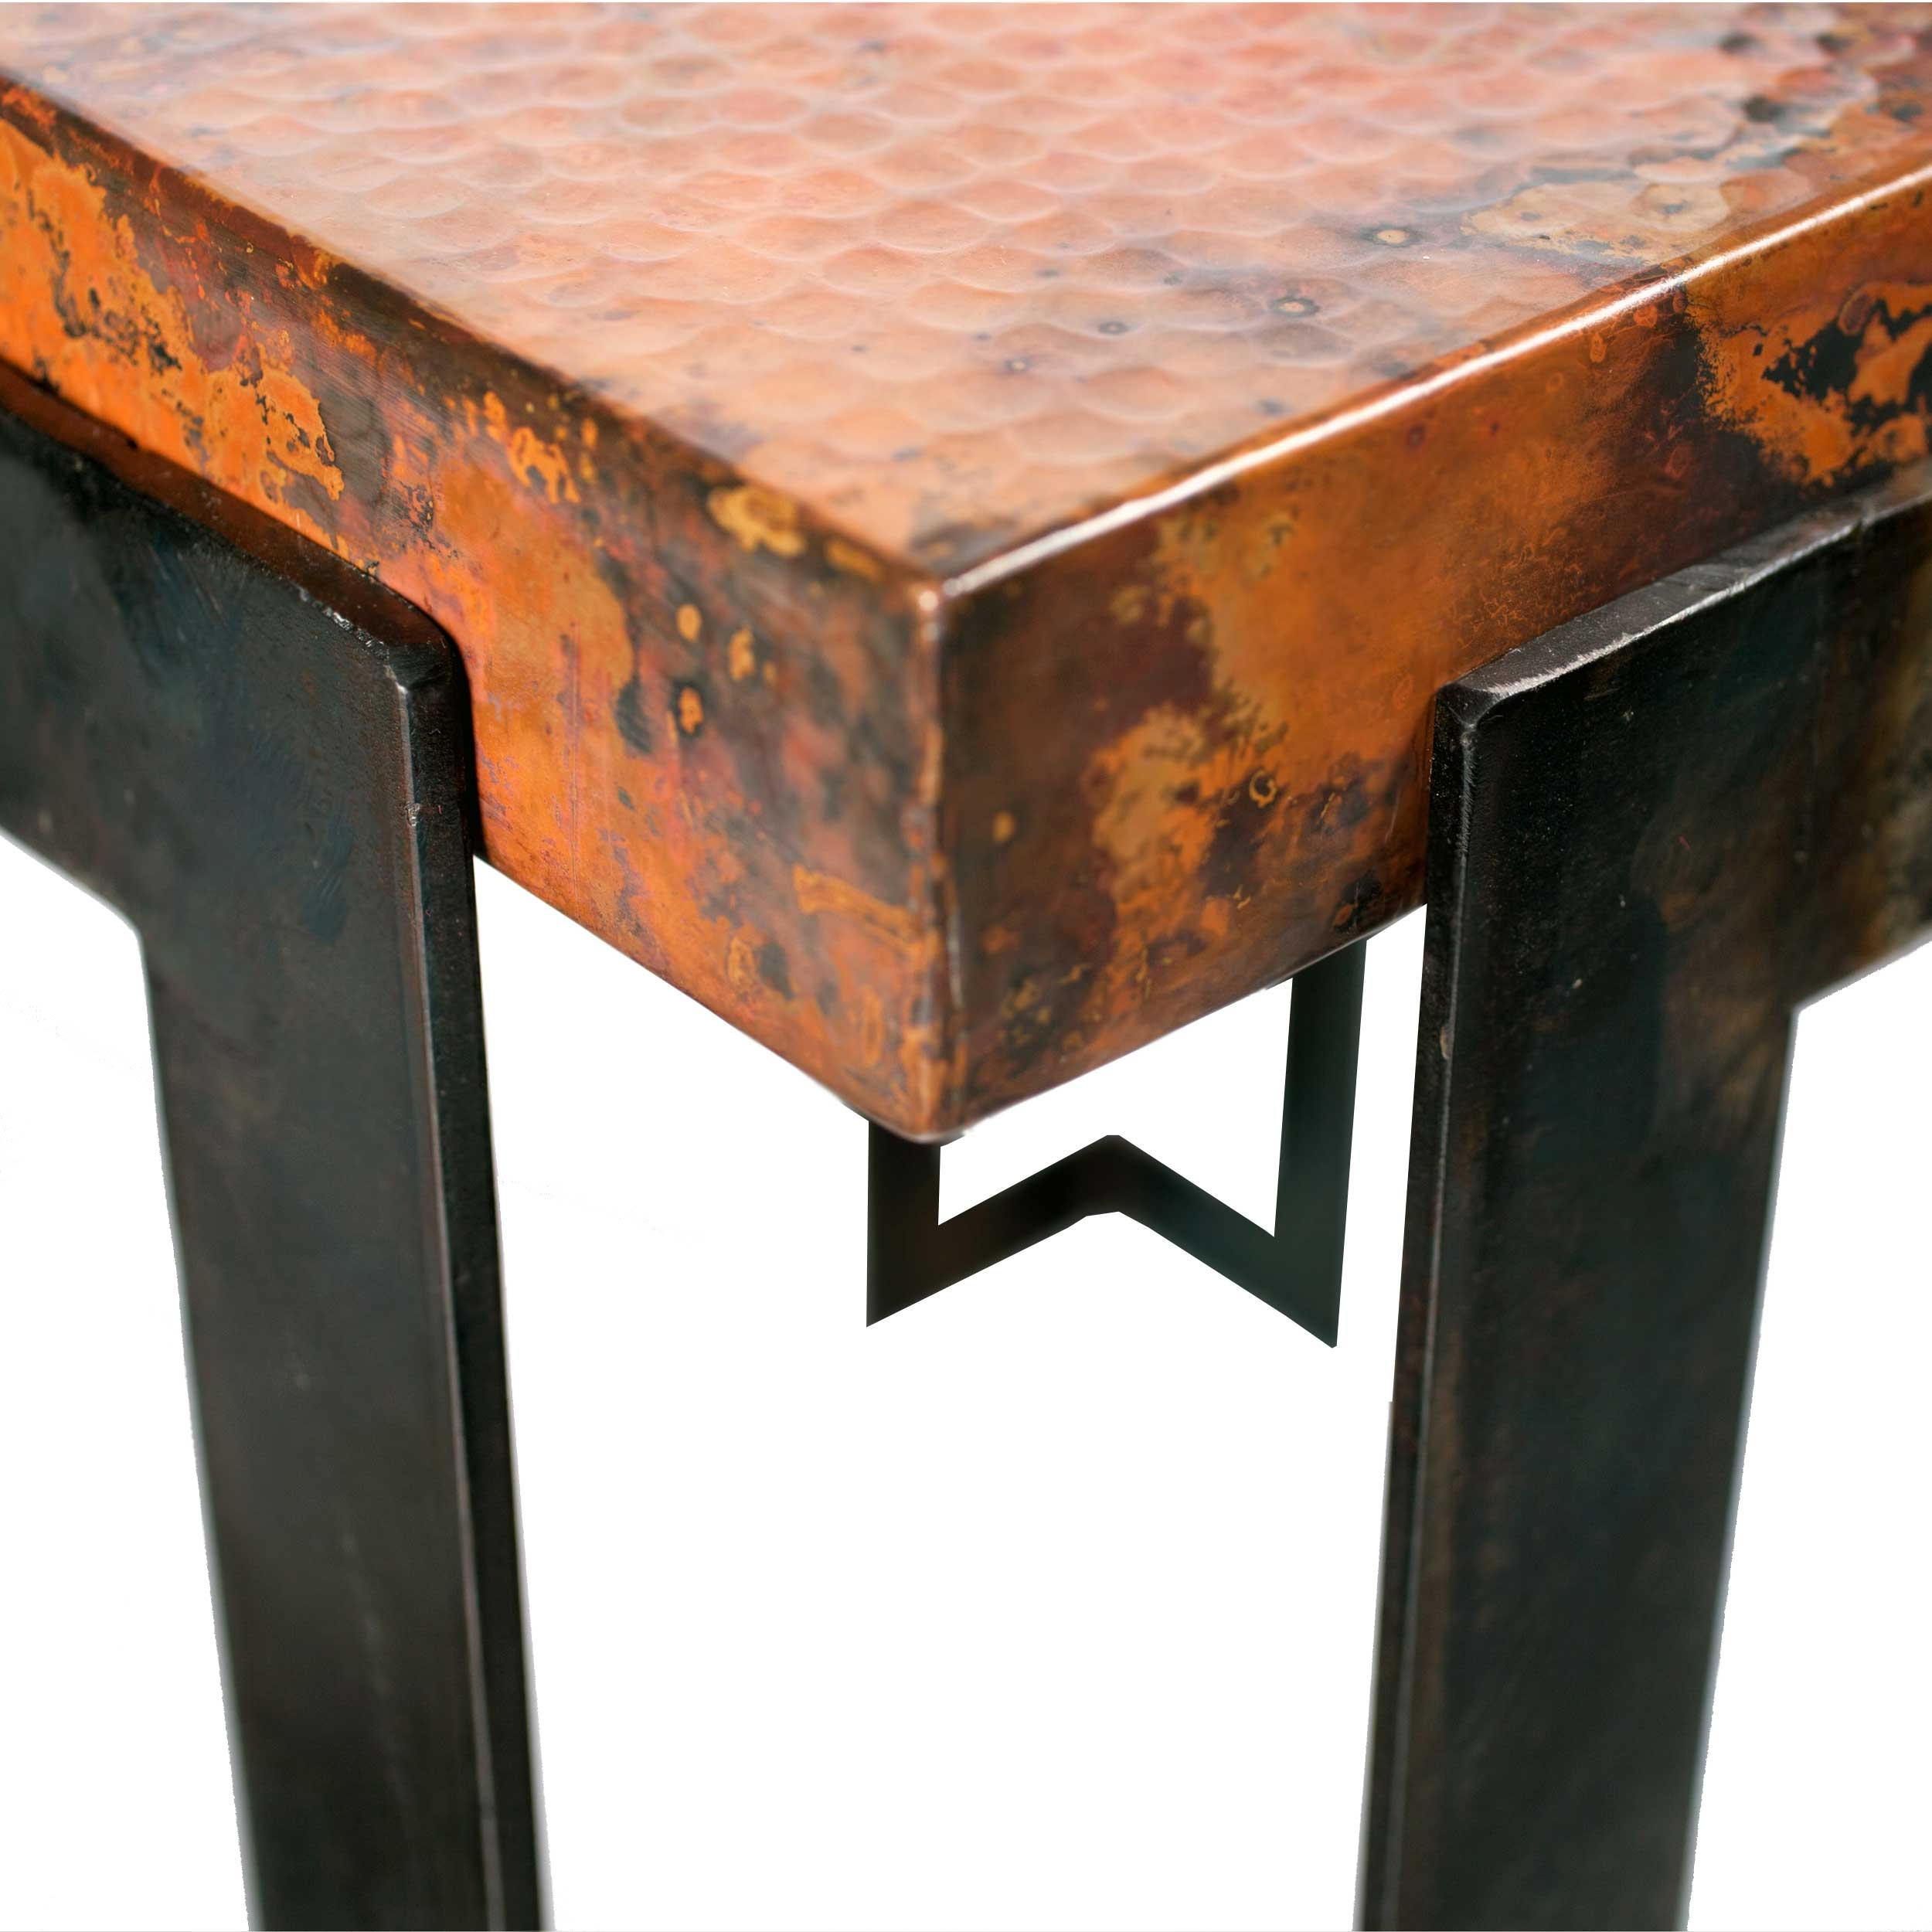 Hammered Copper Top Dining Table